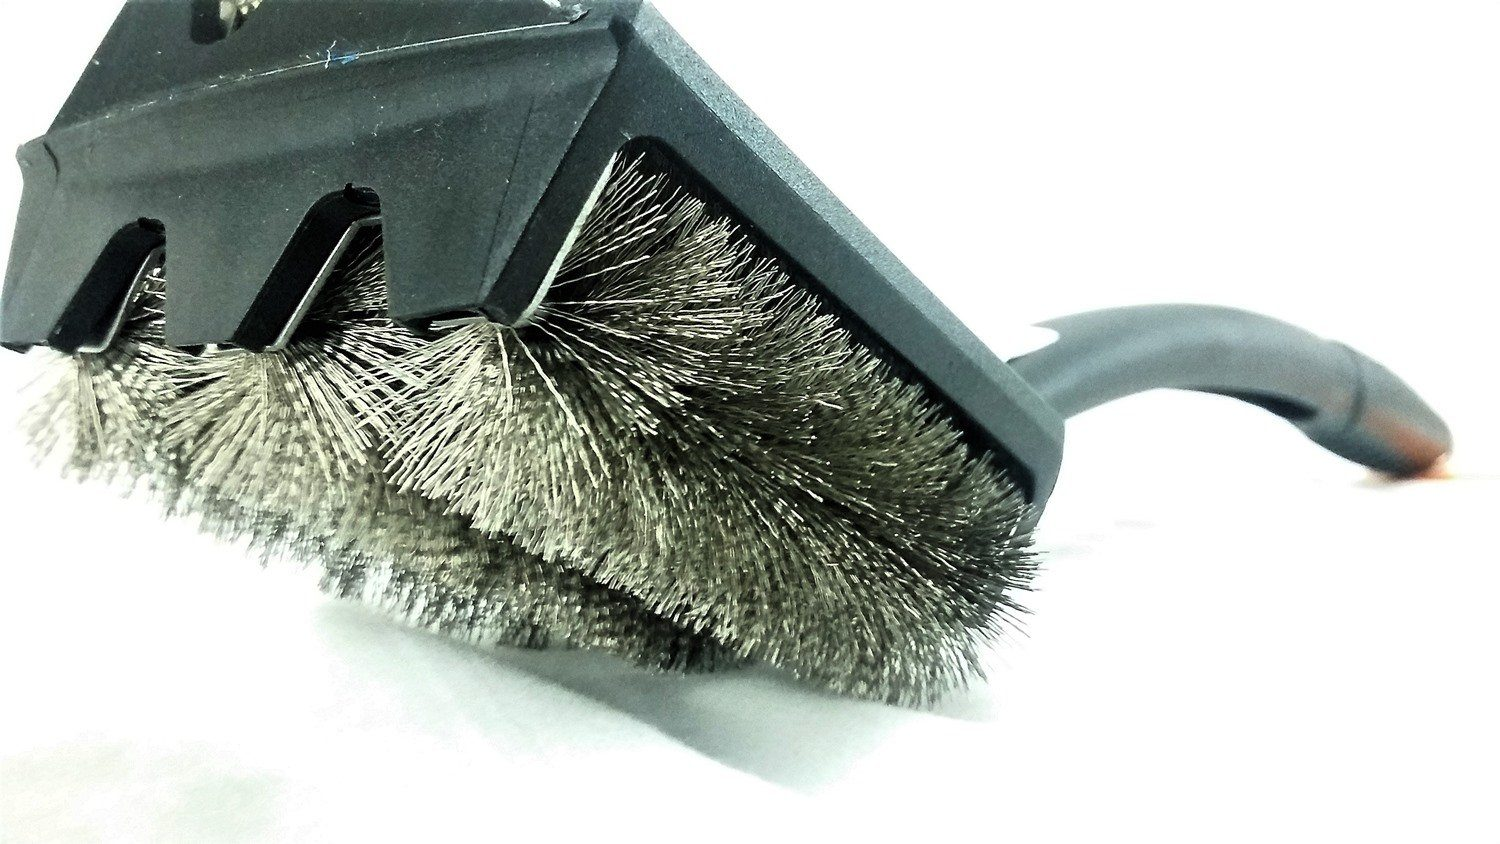 Tubular Bristle Grill Cleaning Brush Outset